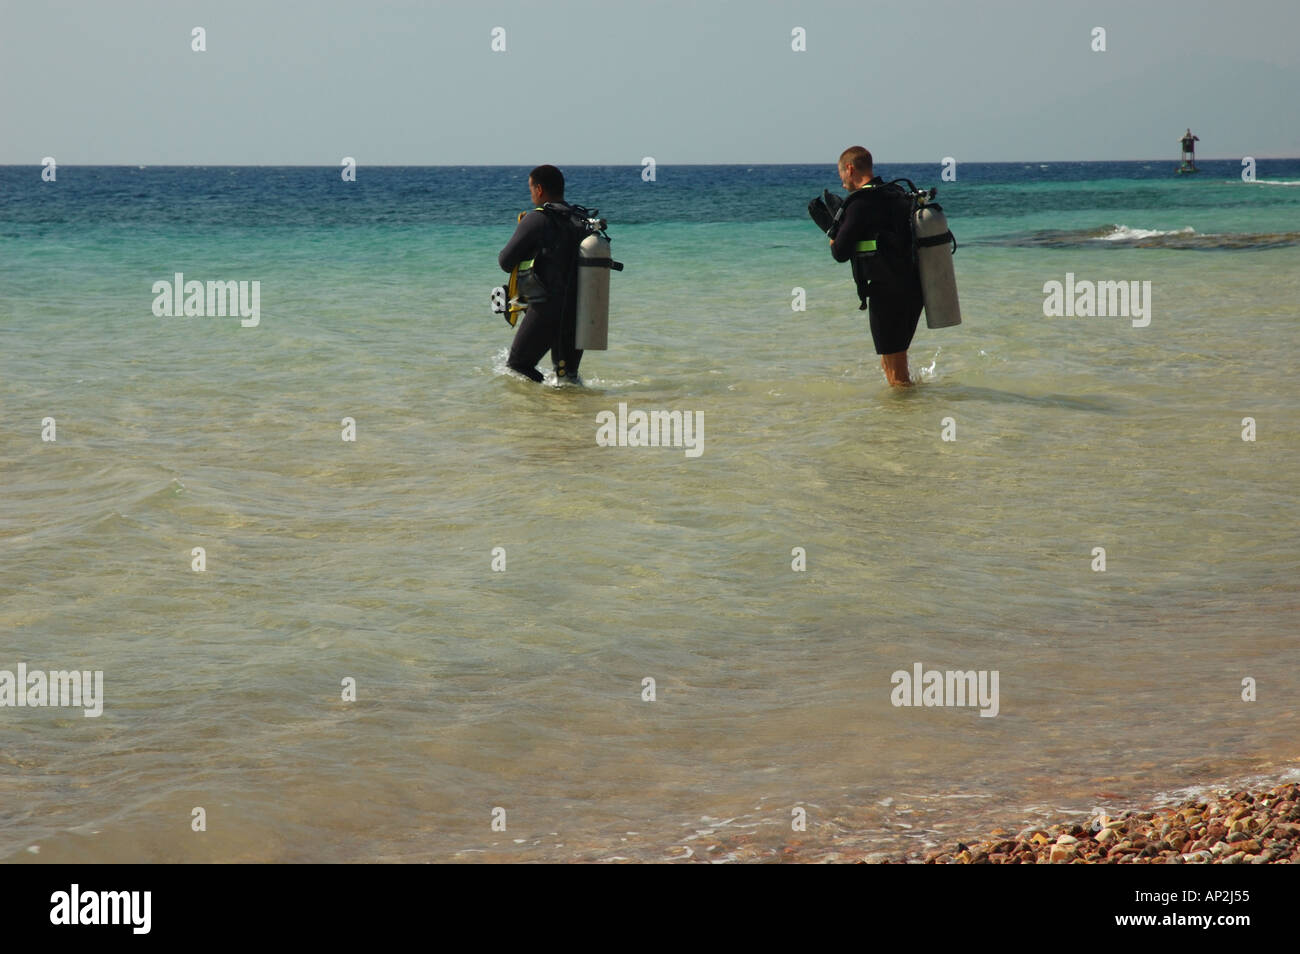 Two divers enter the sea in preparation for a dive at the Outside Hilton dive site in Nuweiba Egypt - Stock Image